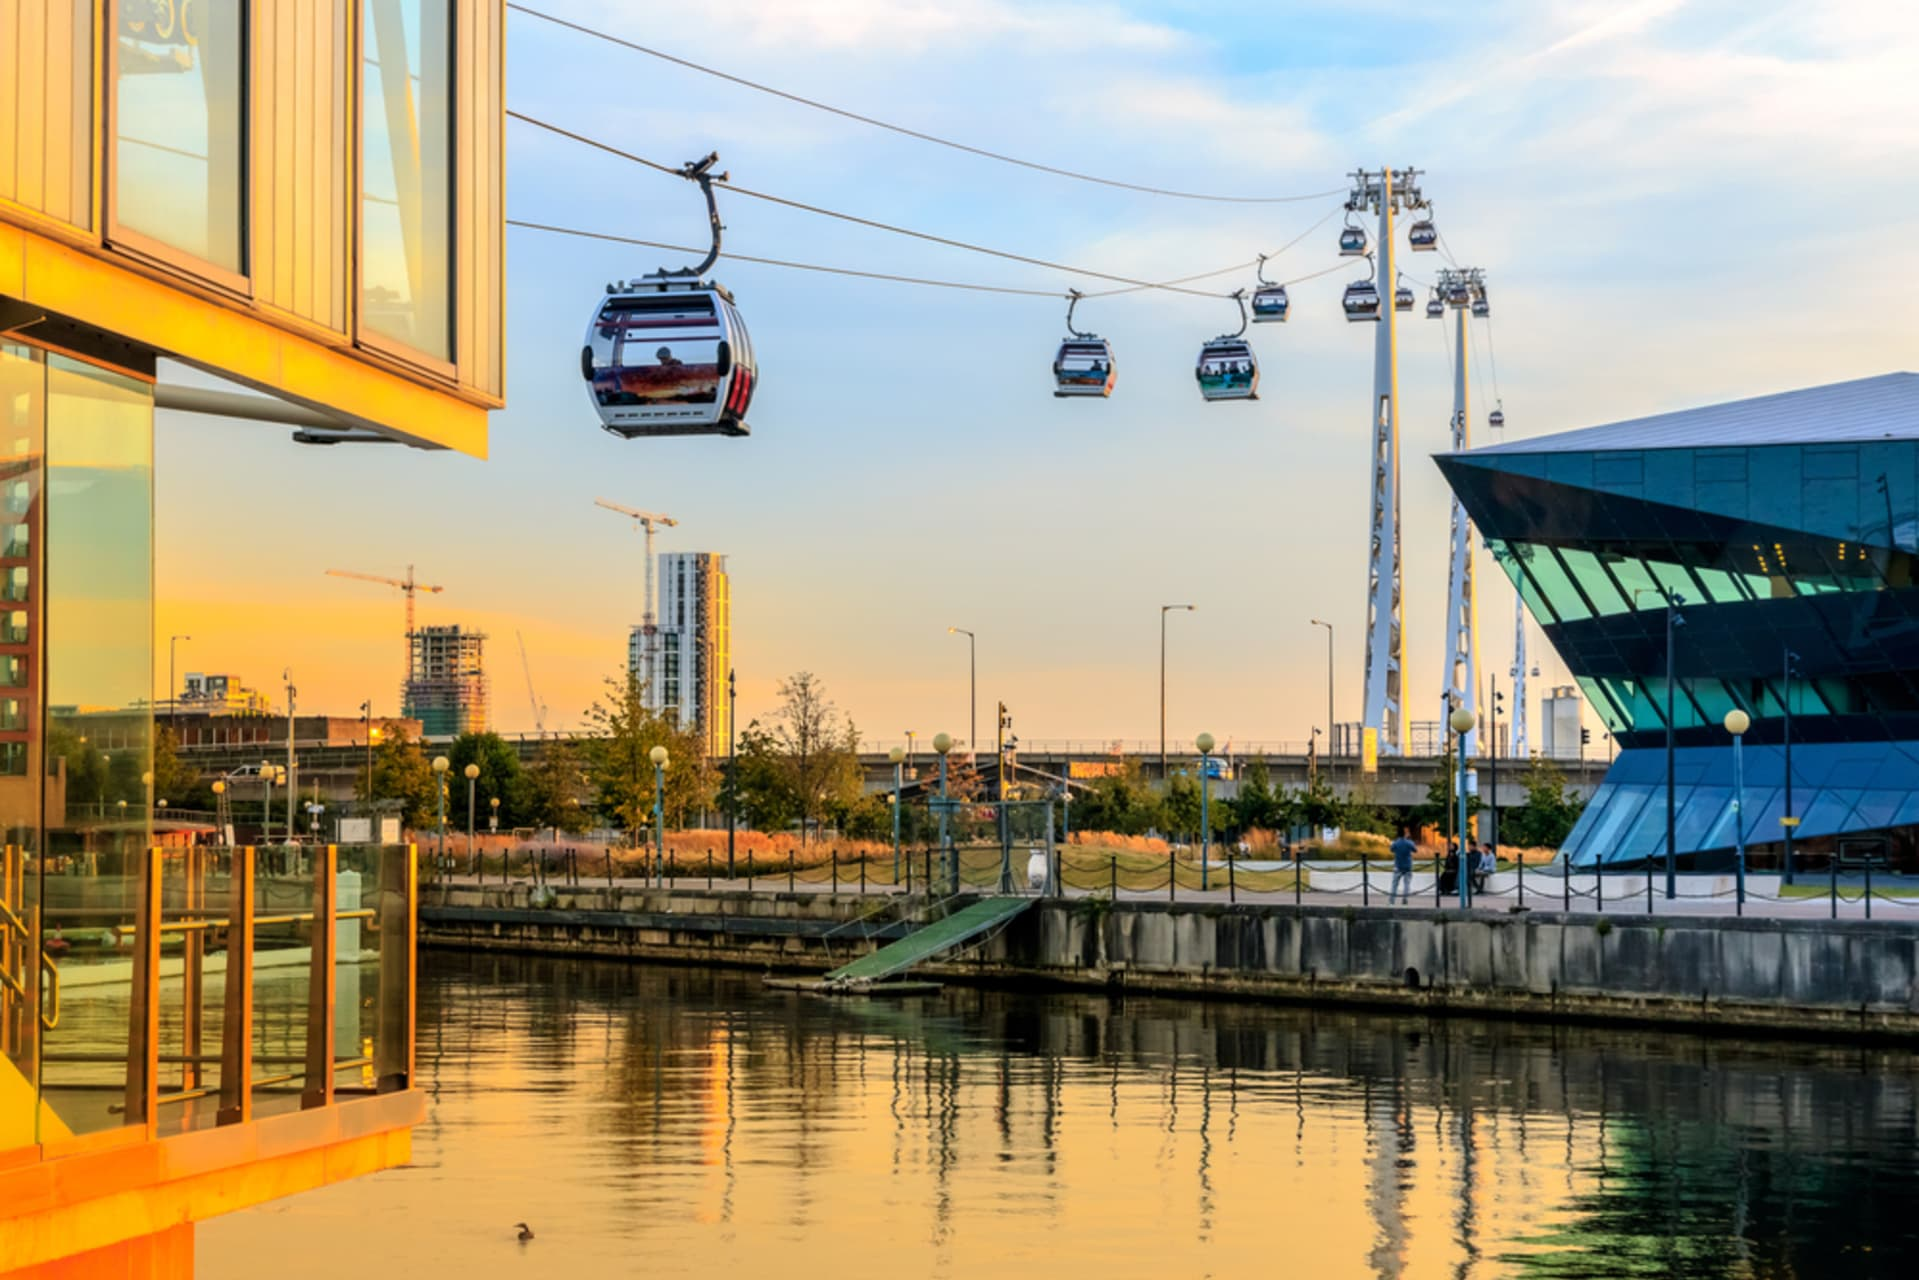 London - London by Cable Car and DLR